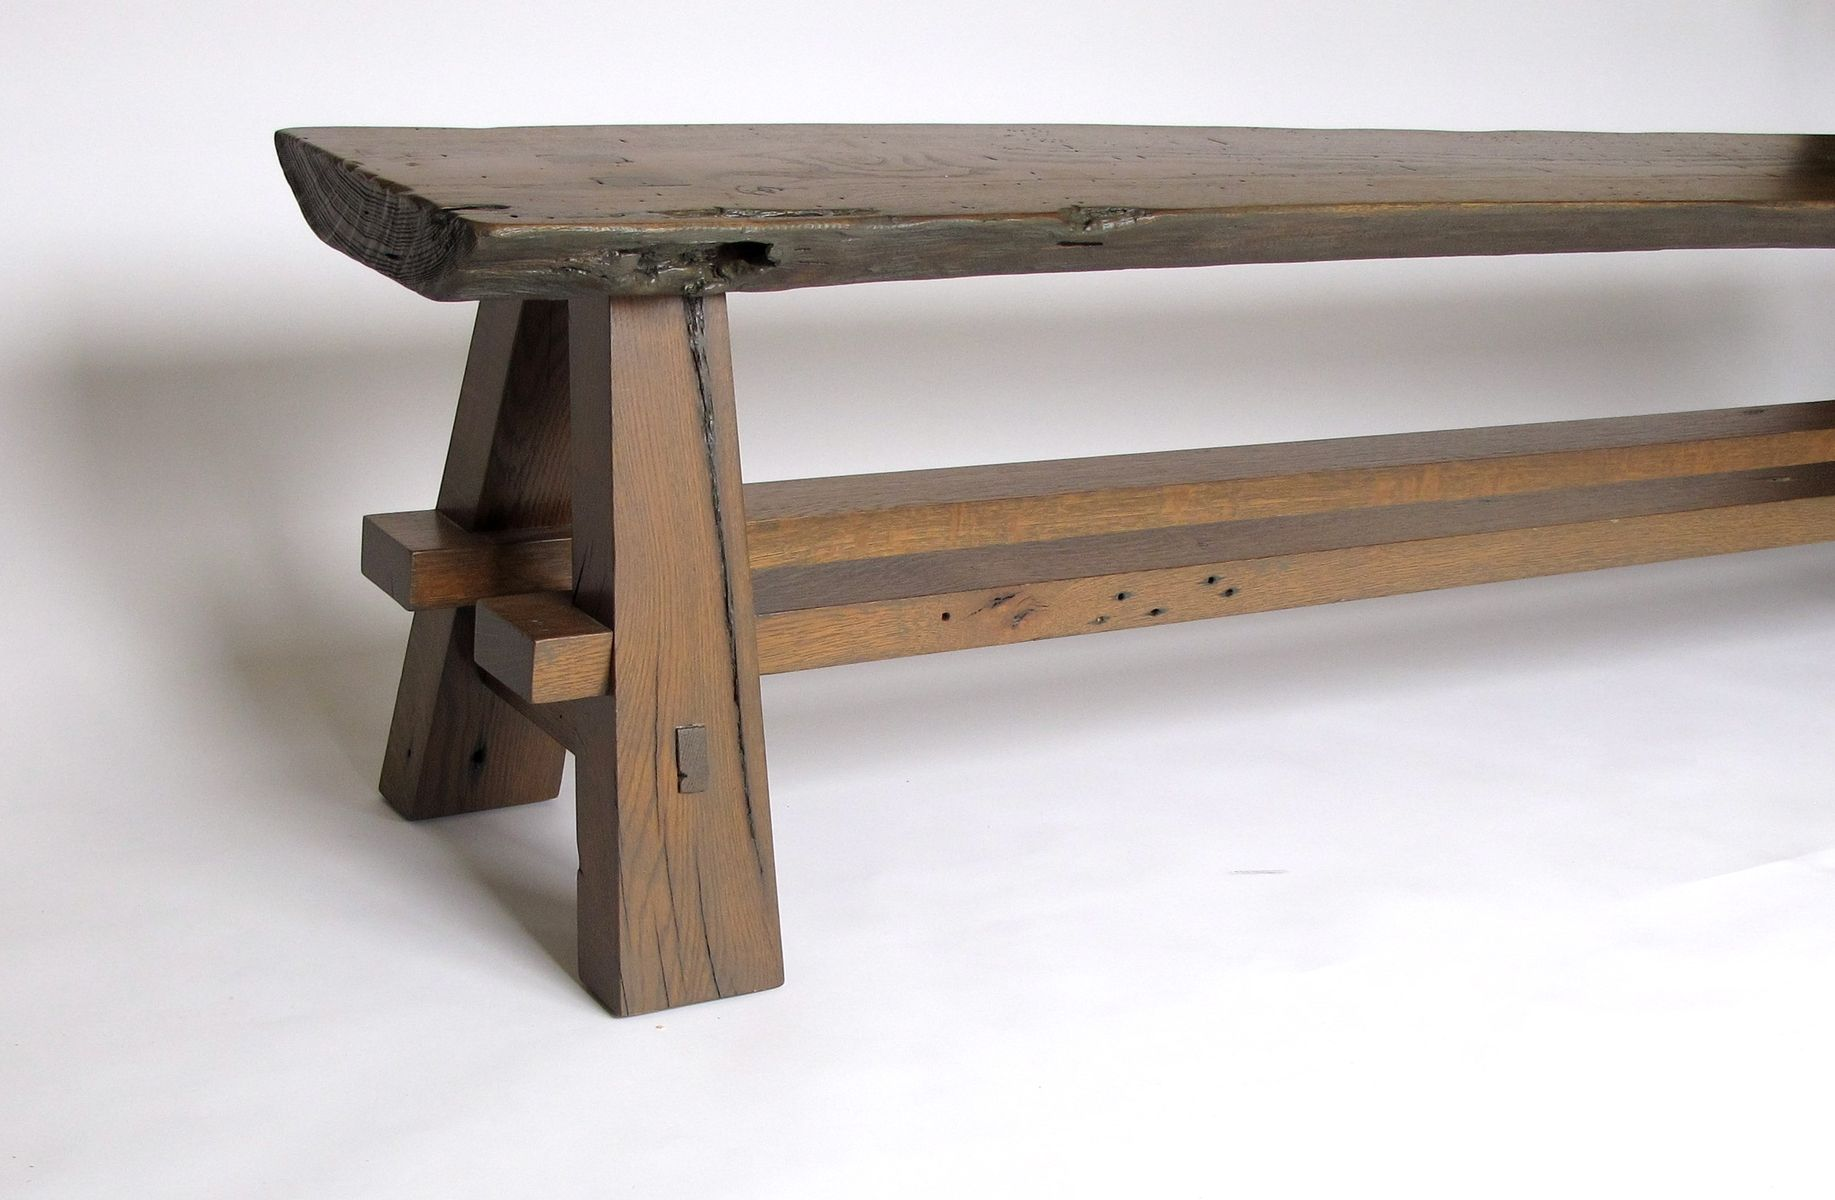 Custom Rustic Bench Made With Reclaimed Barnwood And Oak Slab By Intelligent Design Woodwork